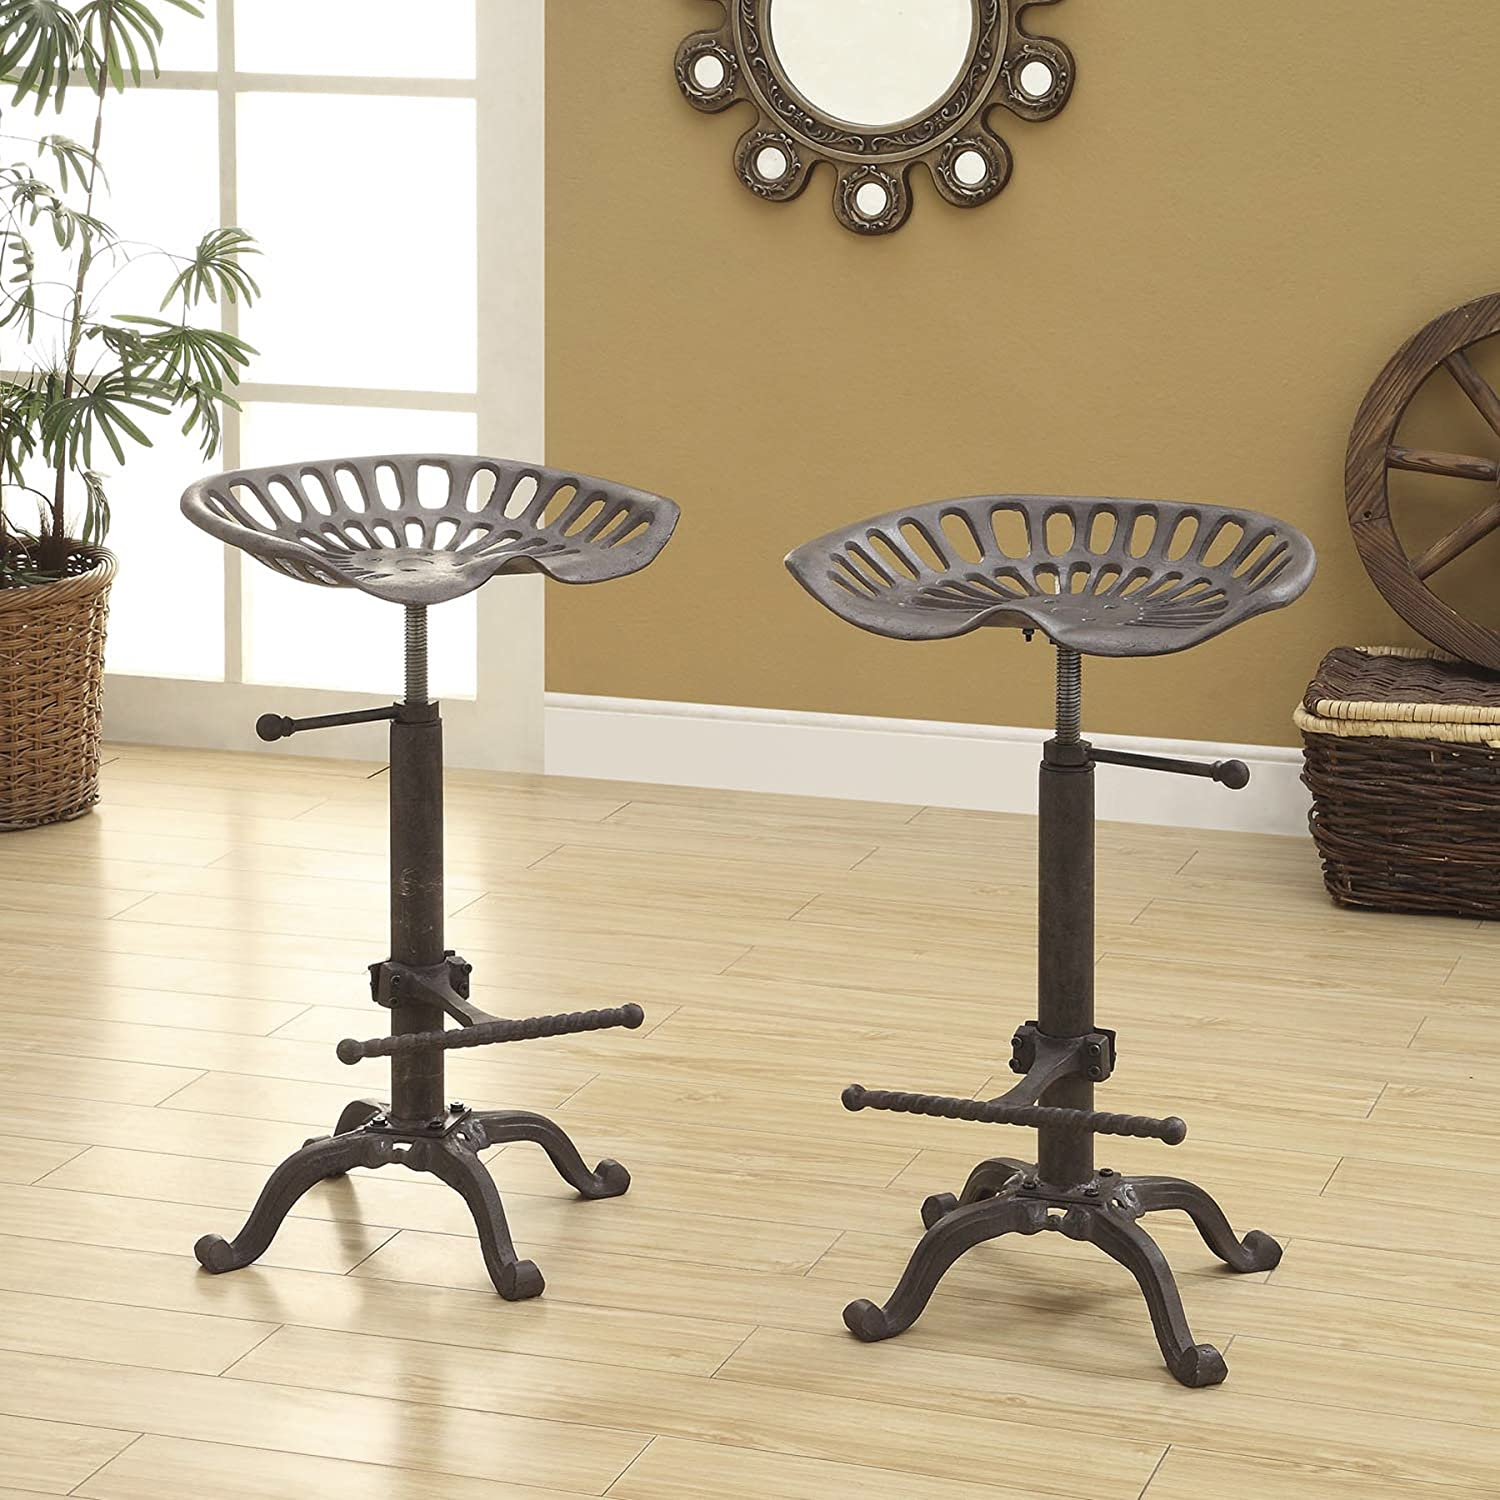 Amazon.com Carolina Chair and Table Adjustable Colton Tractor Seat Stool Kitchen \u0026 Dining & Amazon.com: Carolina Chair and Table Adjustable Colton Tractor ... islam-shia.org